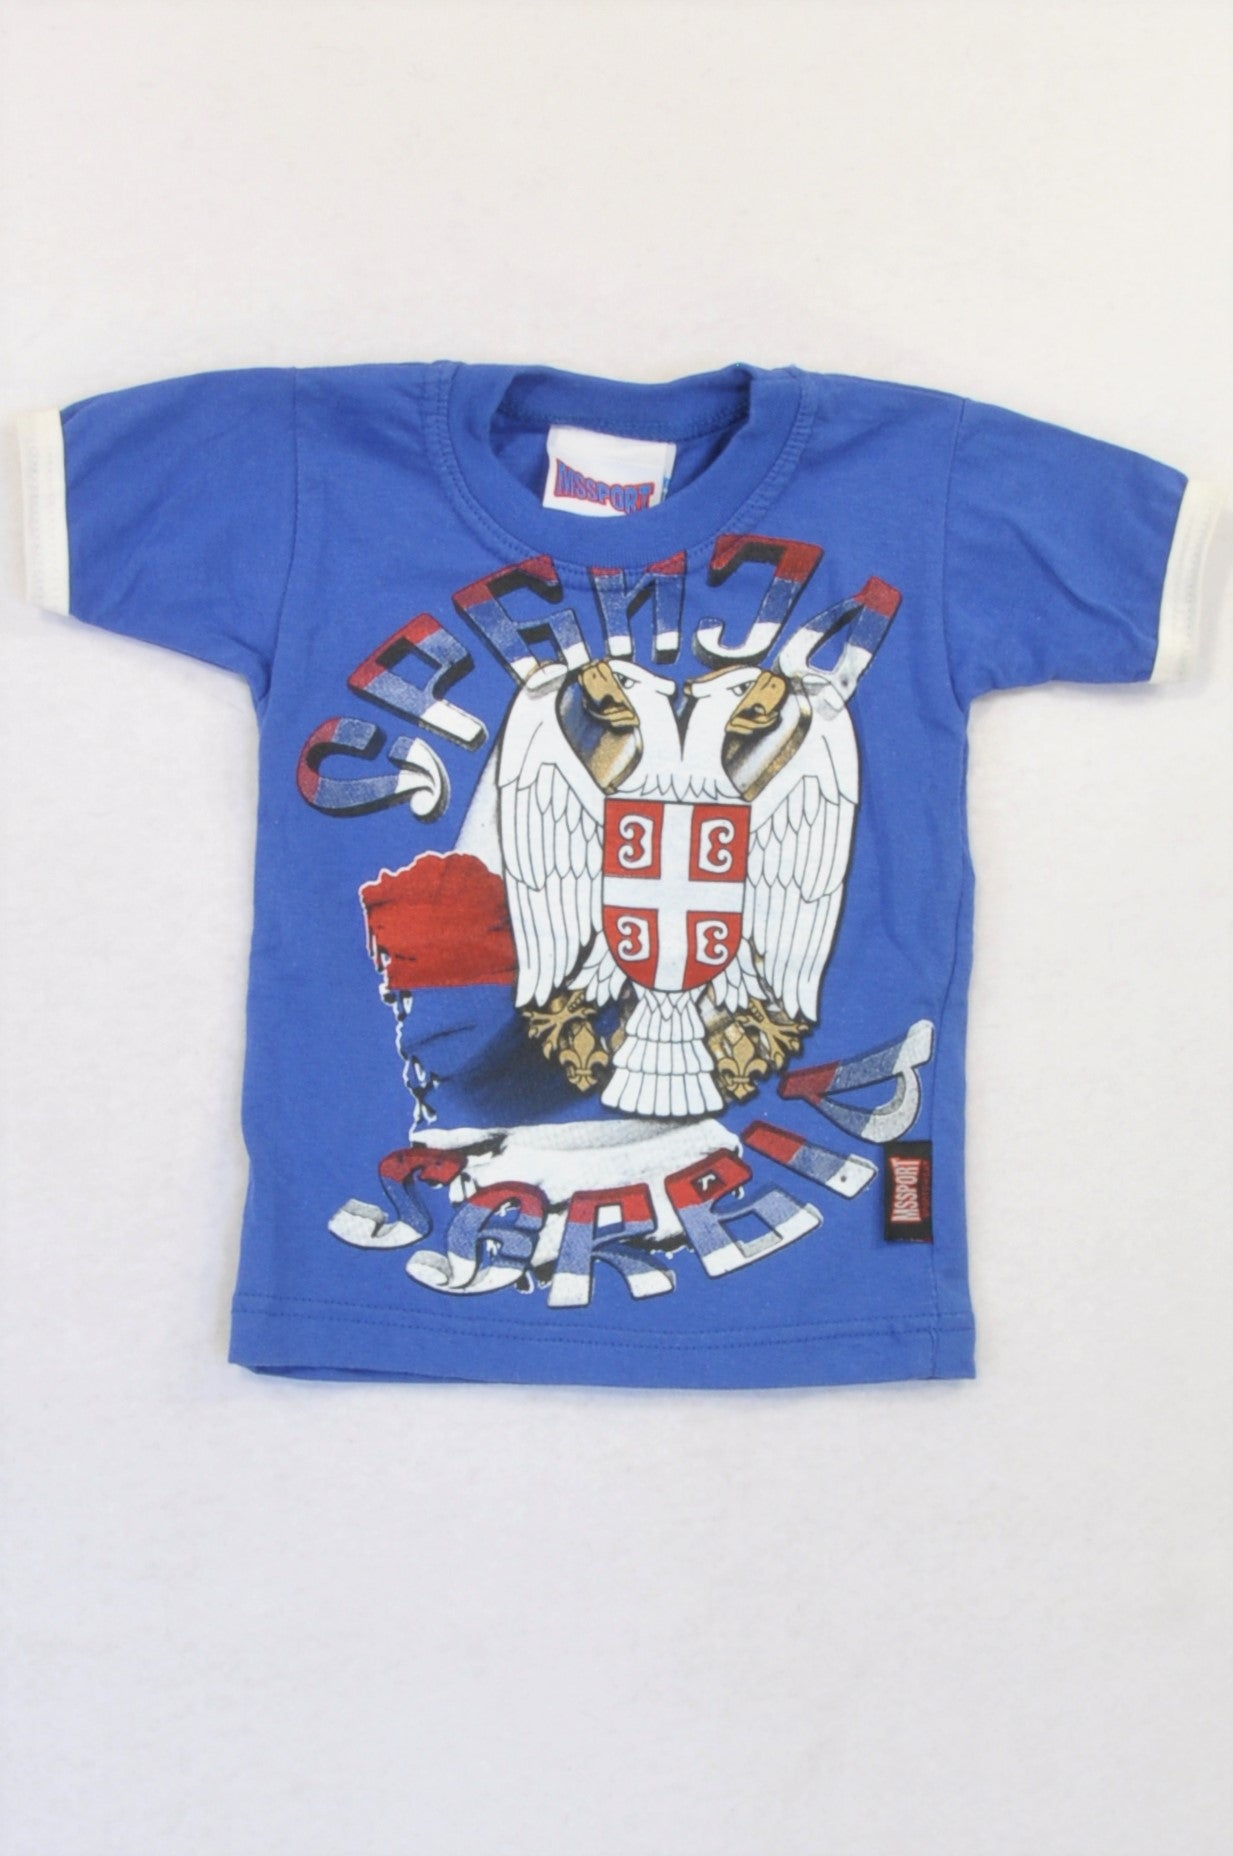 MSSPORT Blue White Trim Eagle Serbia T-shirt Boys 12-18 months